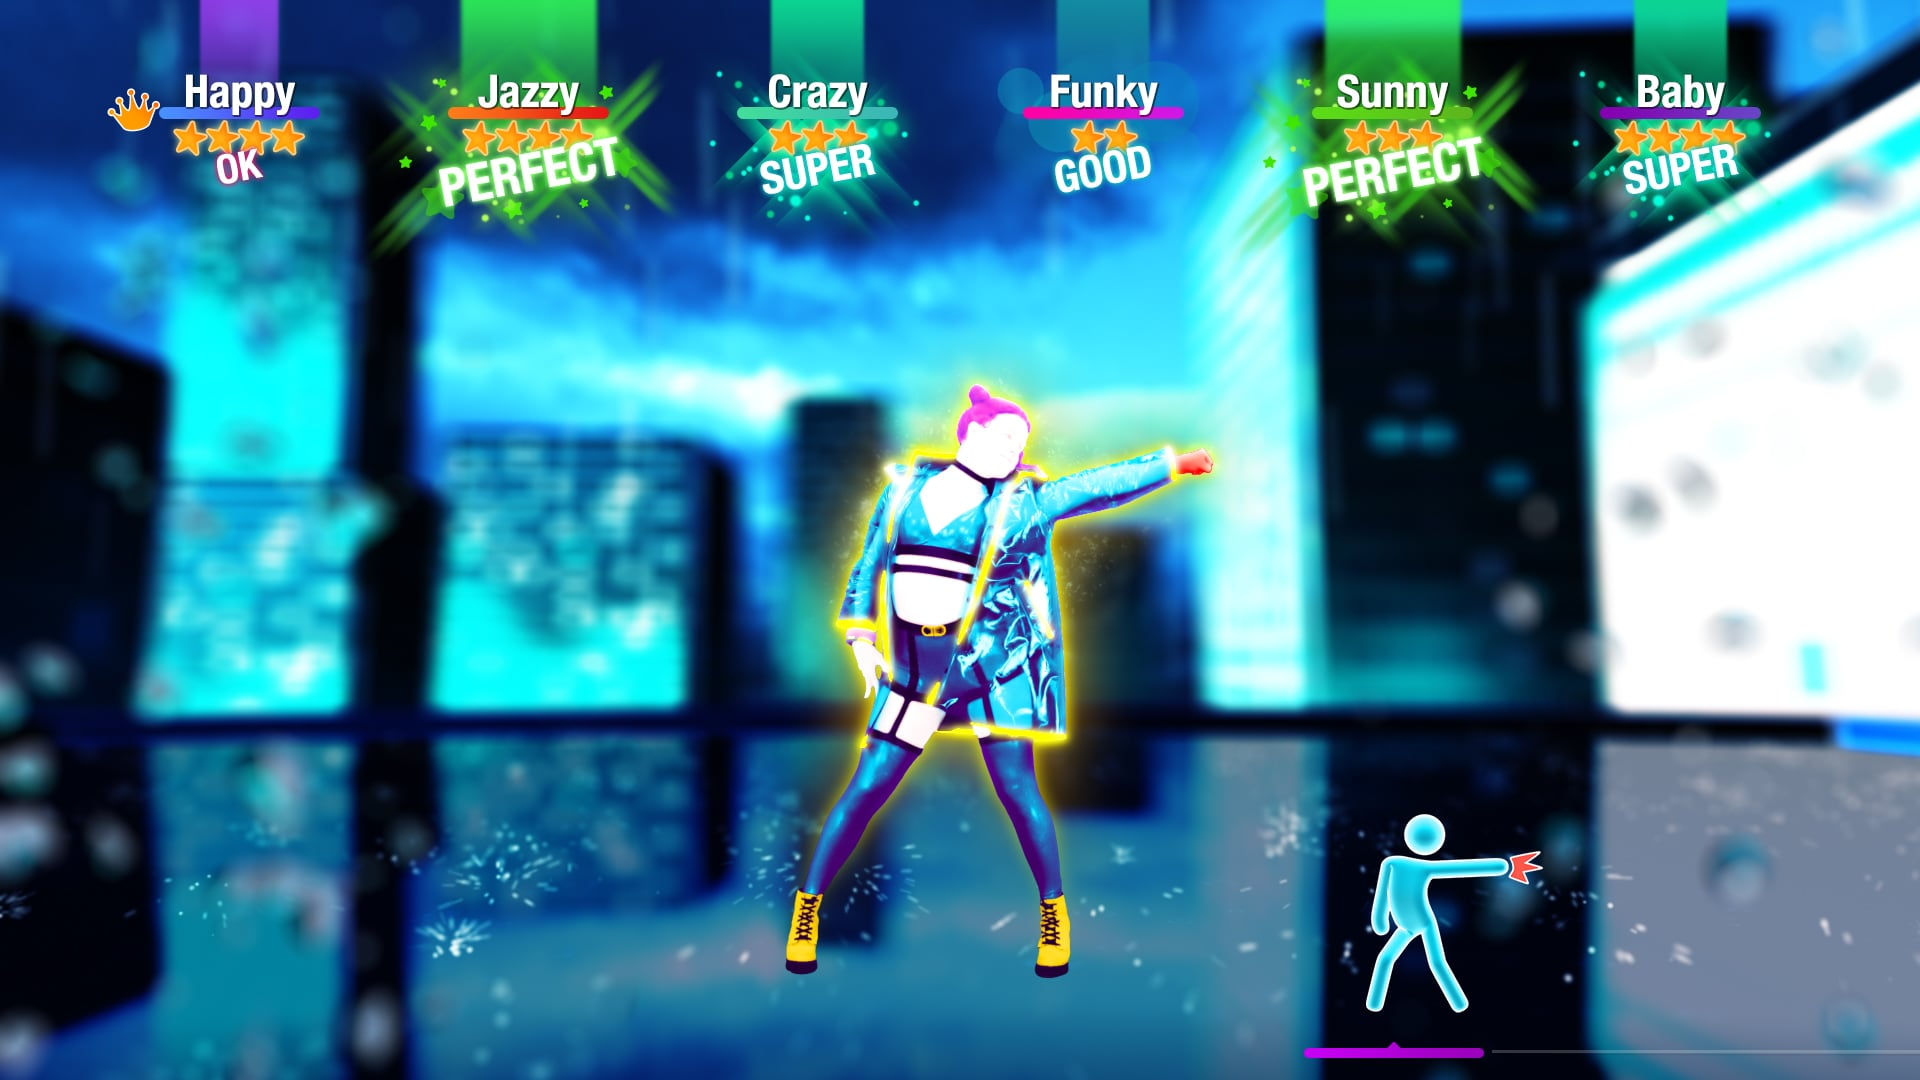 New Dance Moves 2020.Just Dance 2020 E3 Reveal Celebrates Series 10 Year Anniversary